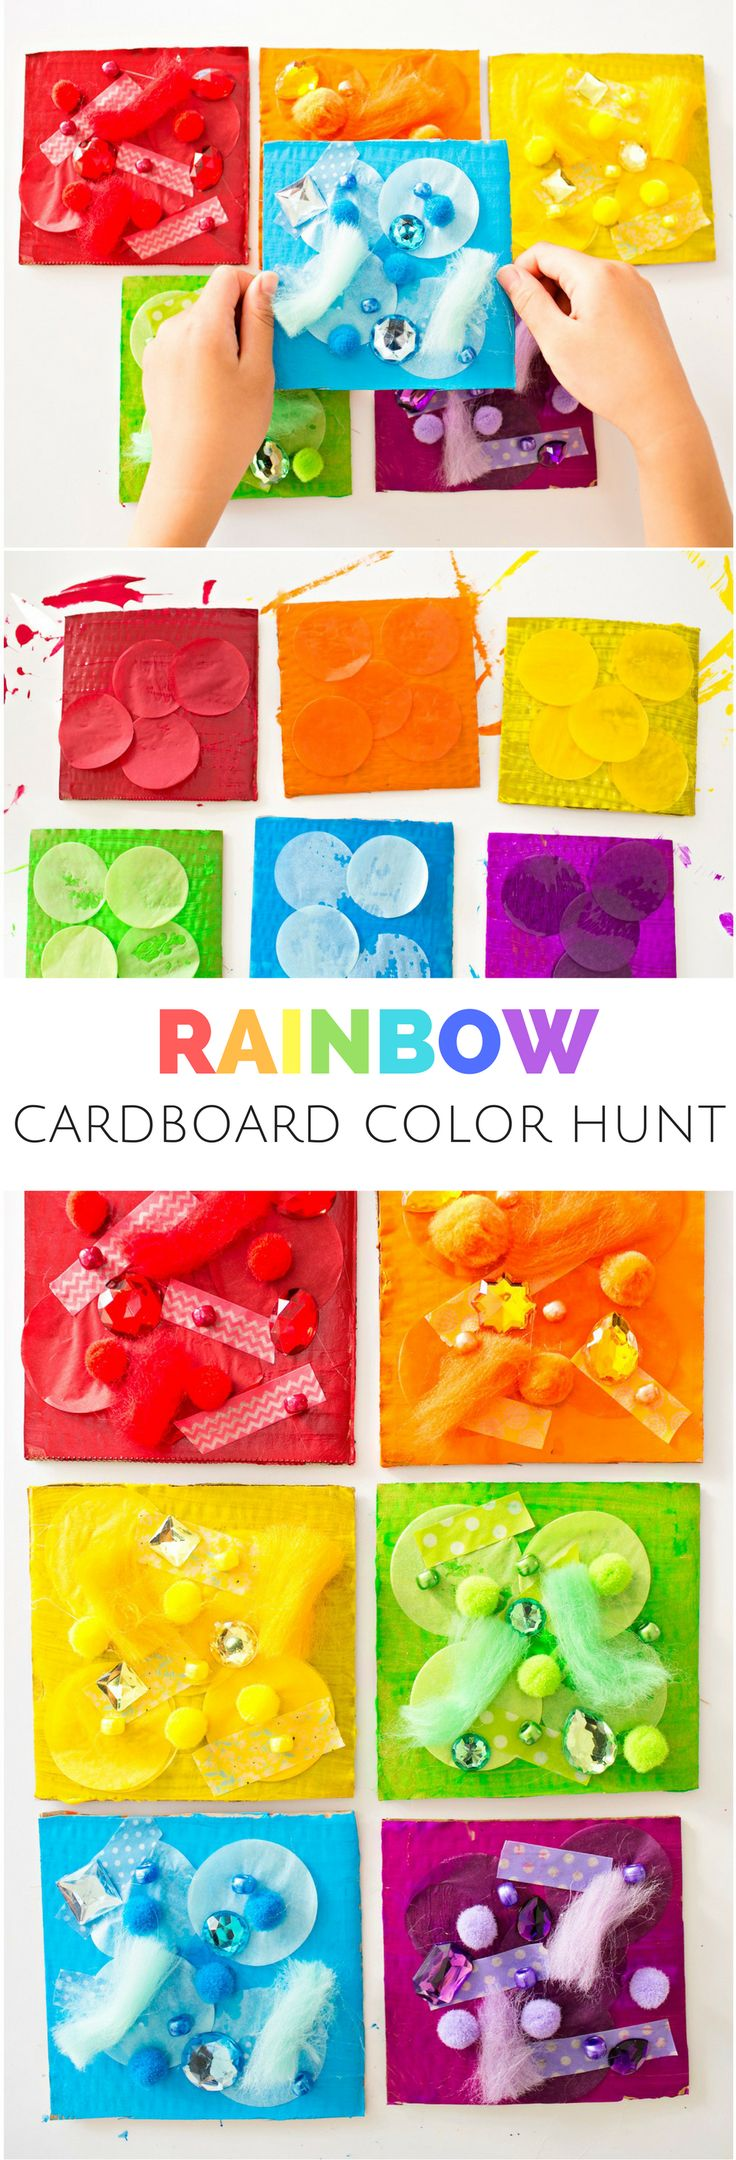 Rainbow Color Hunt Cardboard Art. Fun way to explore and learn colors with kids and make a colorful art project!